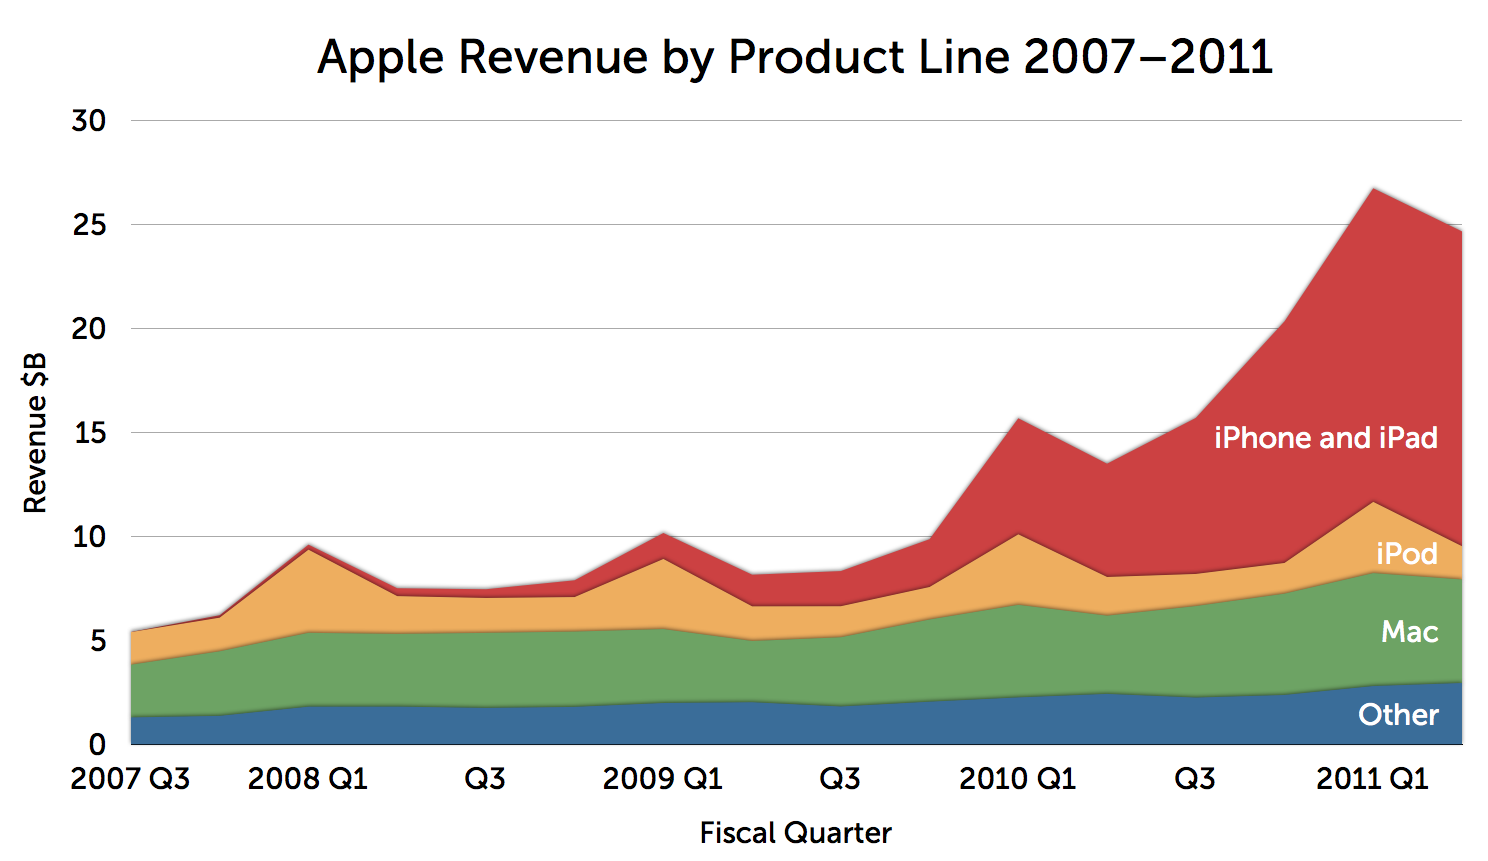 Apple Revenue by Product Line 2007 Q3–2011 Q2